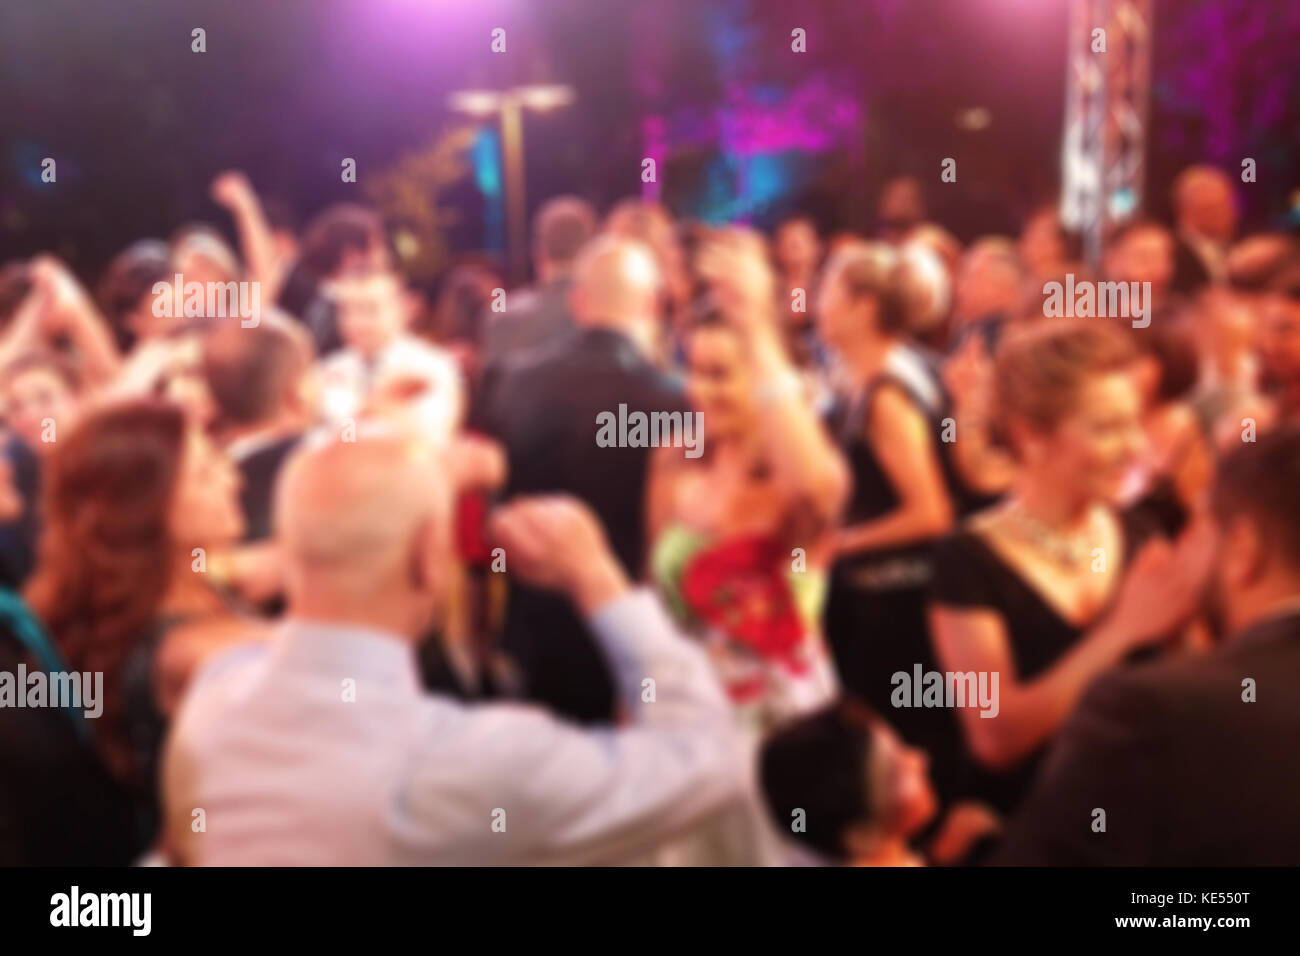 Blurred background with people in a night dancing party - Stock Image